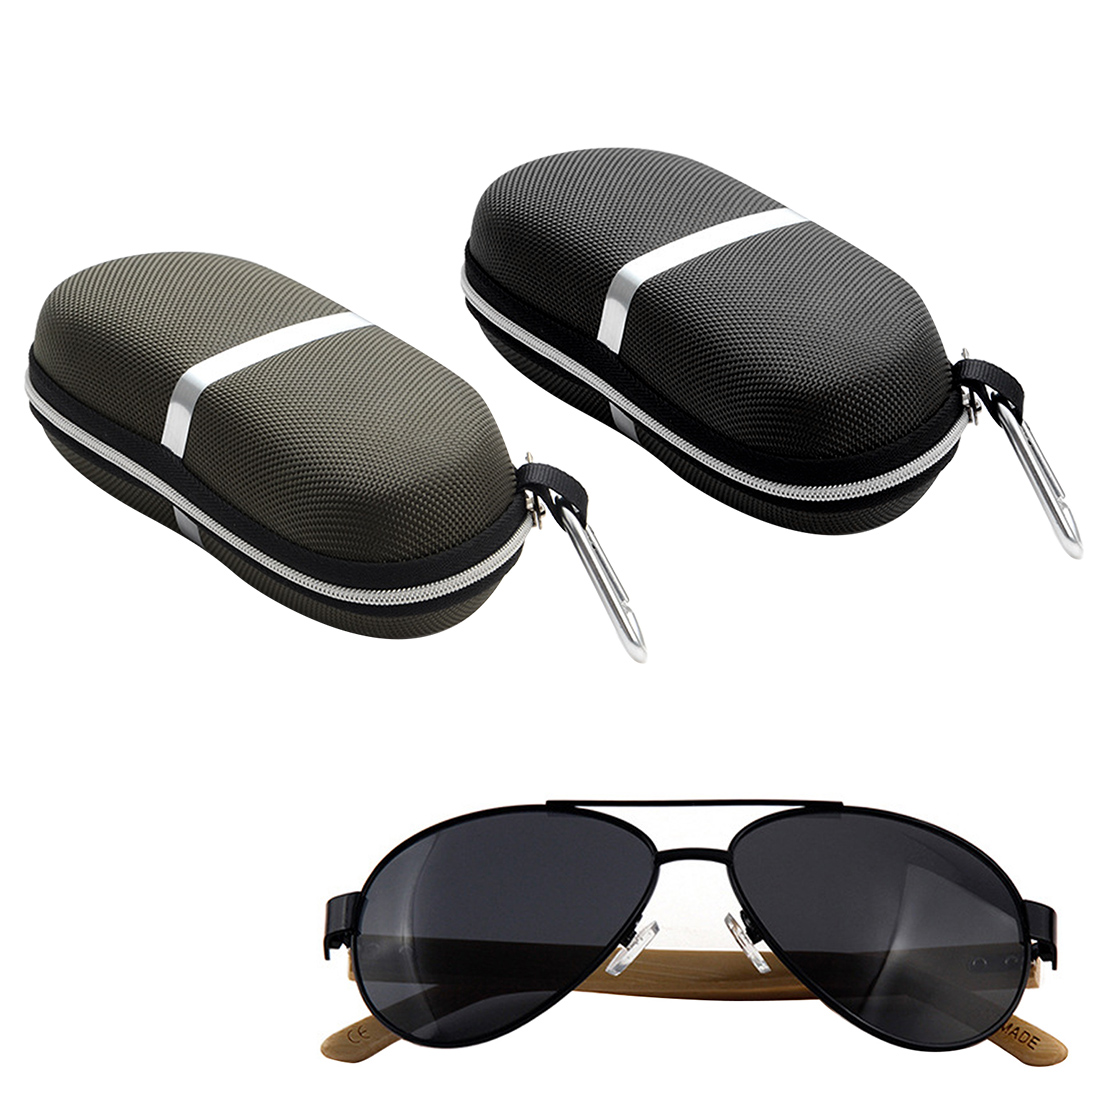 Hot 2Colors Sunglasses Reading Glasses Carry Bag Hard Zipper Box Travel Pack Pouch Case New estuche gafas in Eyewear Accessories from Apparel Accessories